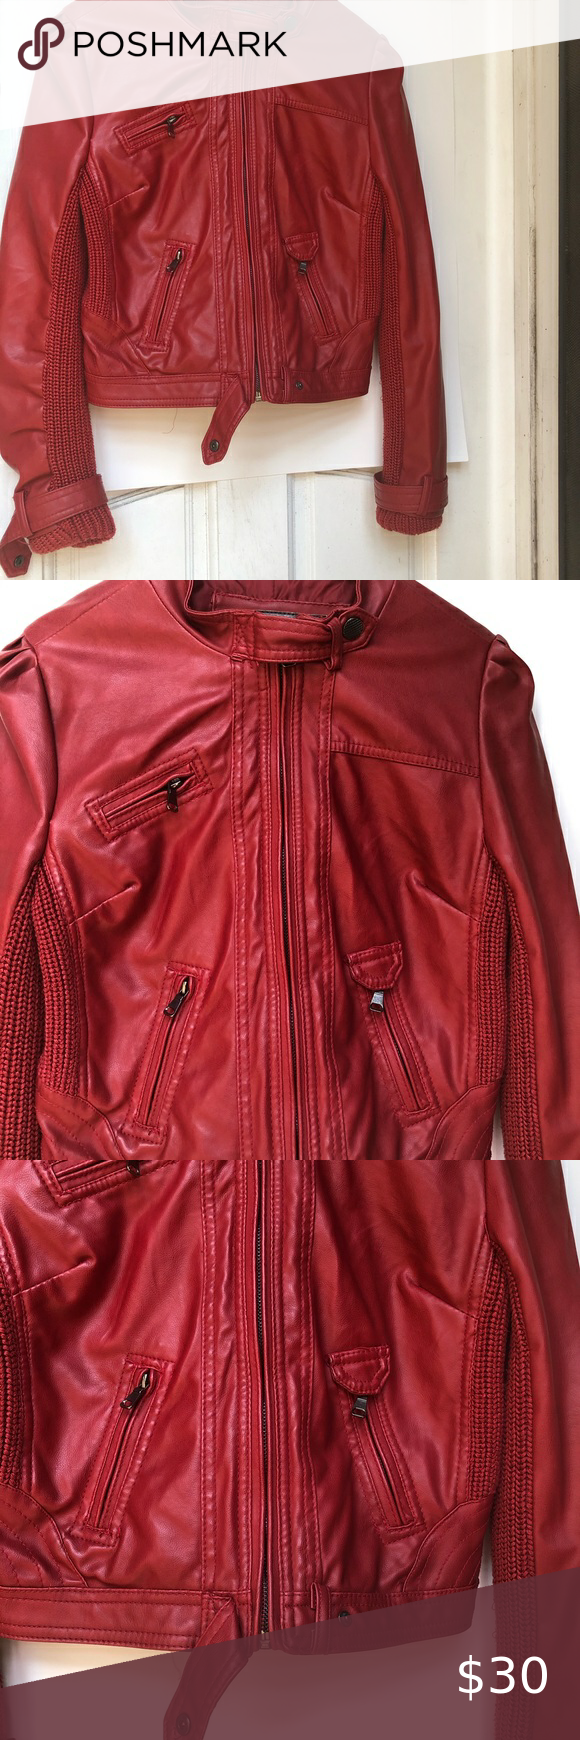 Ci Sono Red Jacket In 2021 Red Jacket Clothes Design Fashion Design